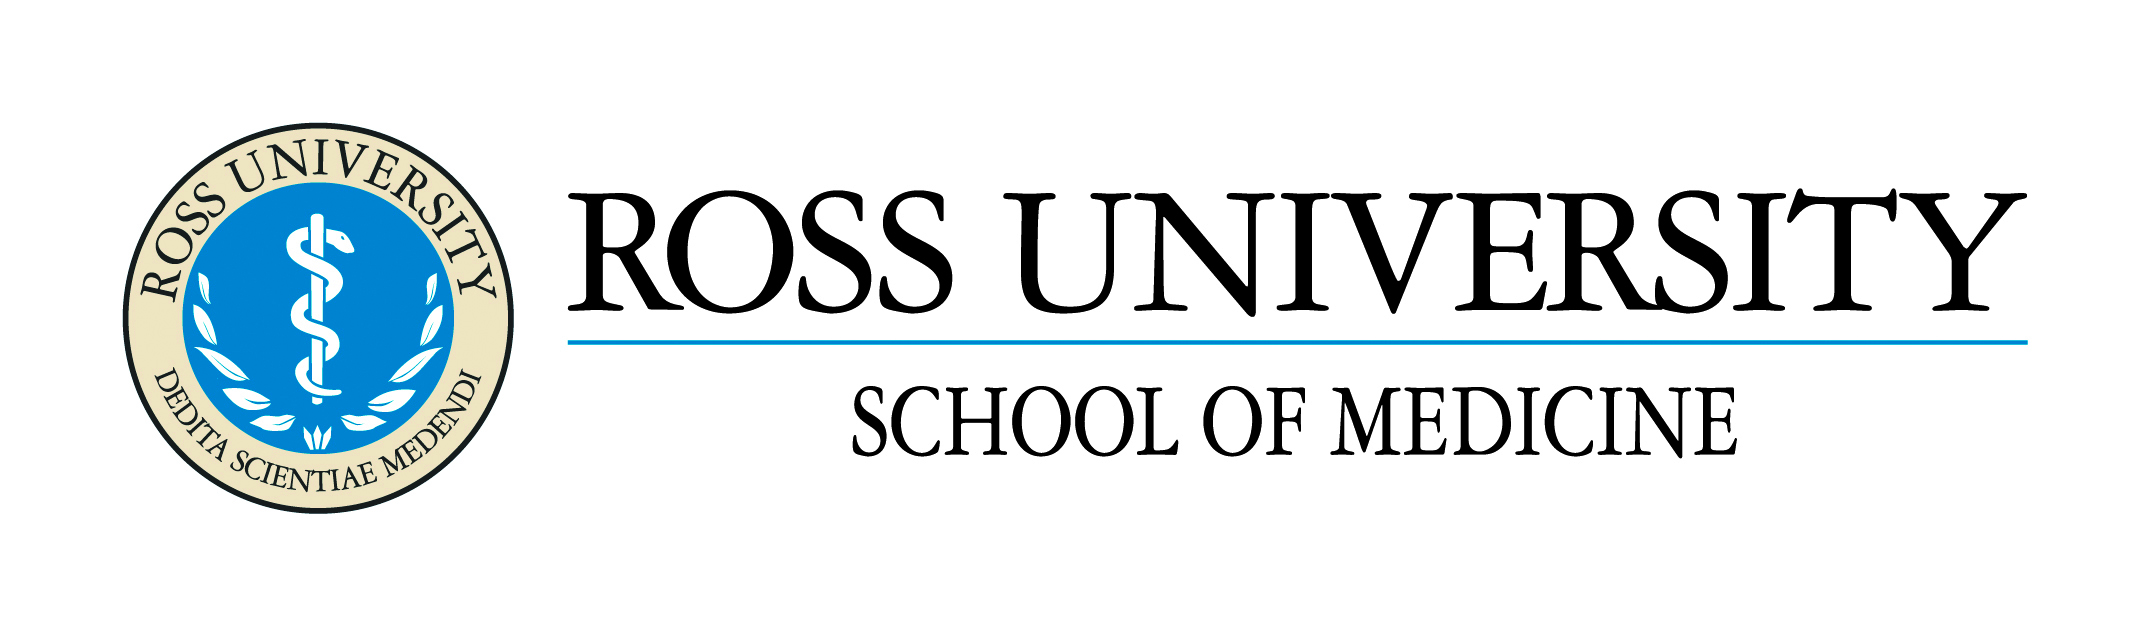 Ross University School of Medicine Expands Education